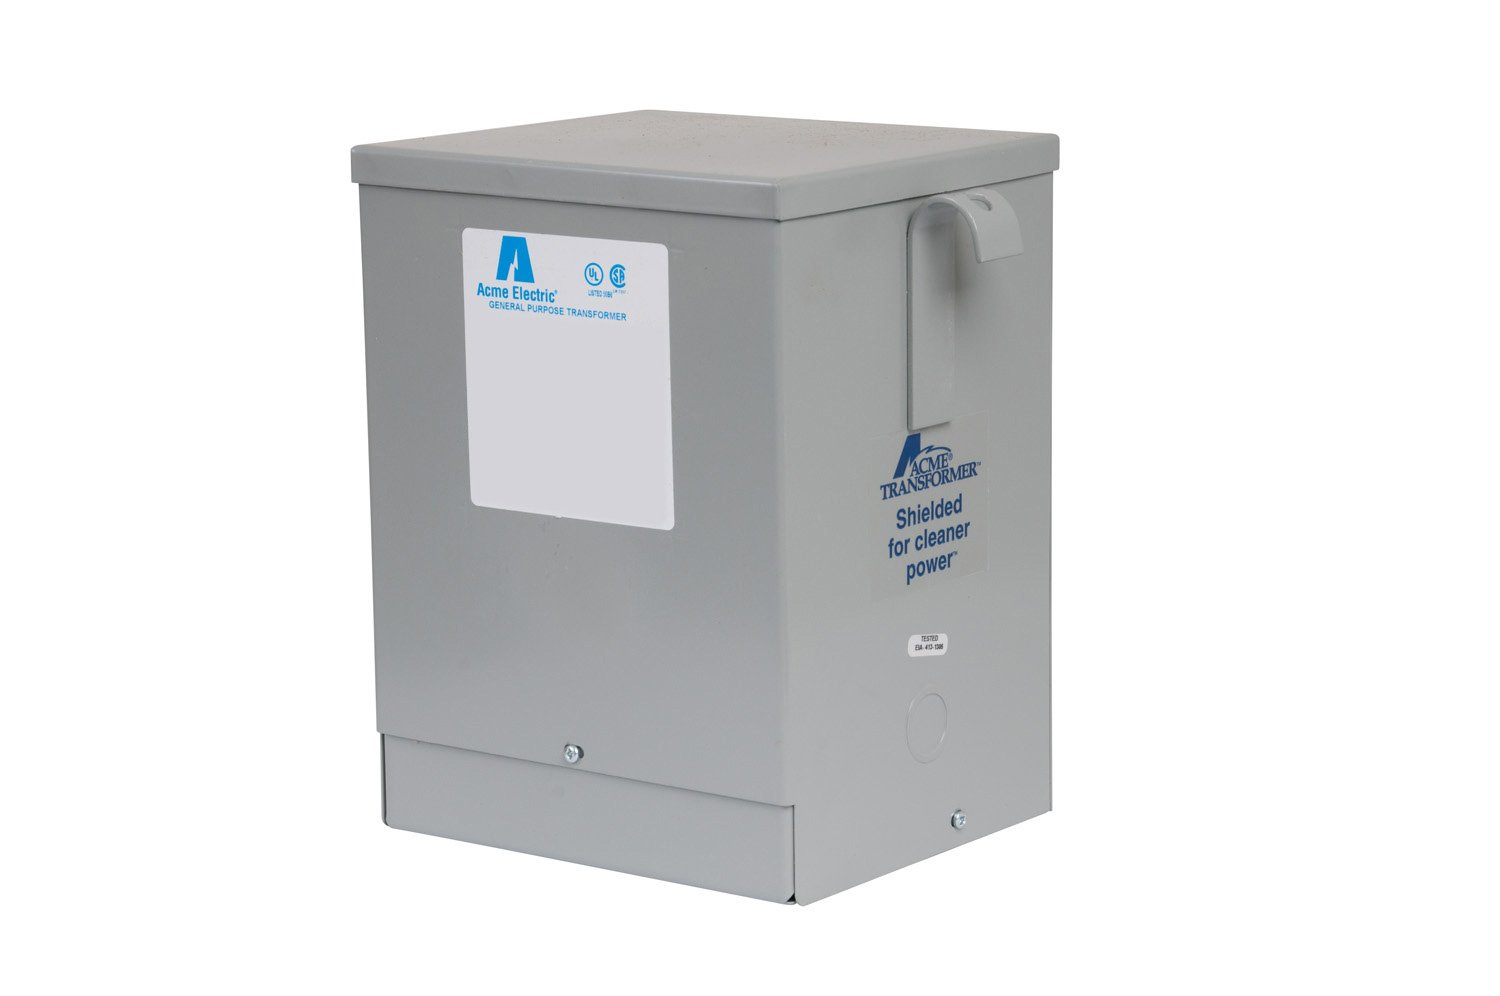 Acme Electric T113077 Buck-Boost Transformer, 1 Phase, 60 Hz, 5 kVA ...